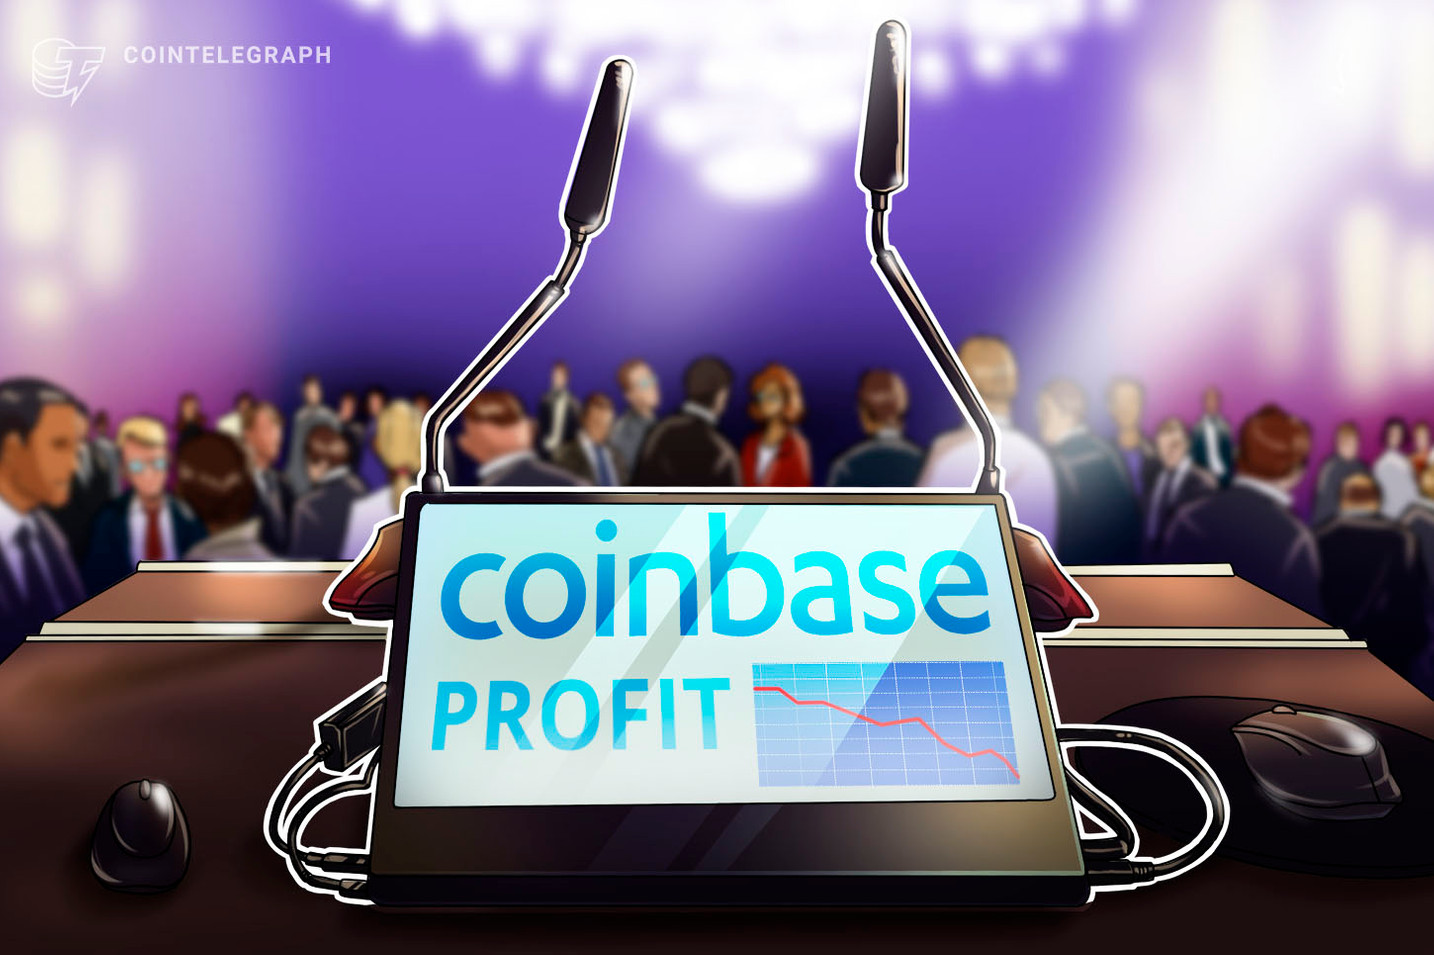 Coinbase's 2018 Revenue Is 60% Less Than Projected by the Firm: Report